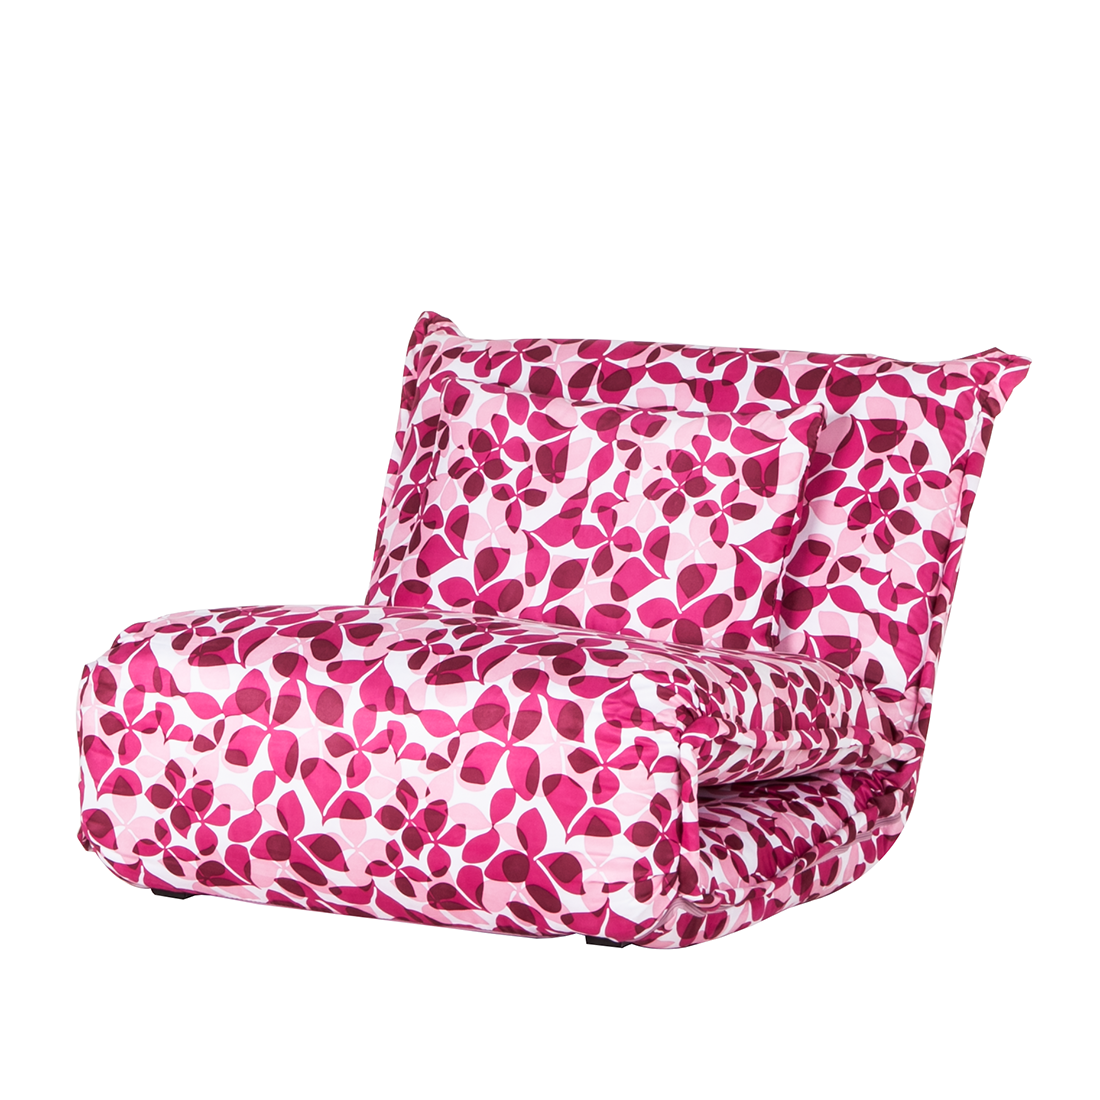 schlafsessel pink blumen schlafsofa schlafcouch g stebett sessel matratze neu ebay. Black Bedroom Furniture Sets. Home Design Ideas